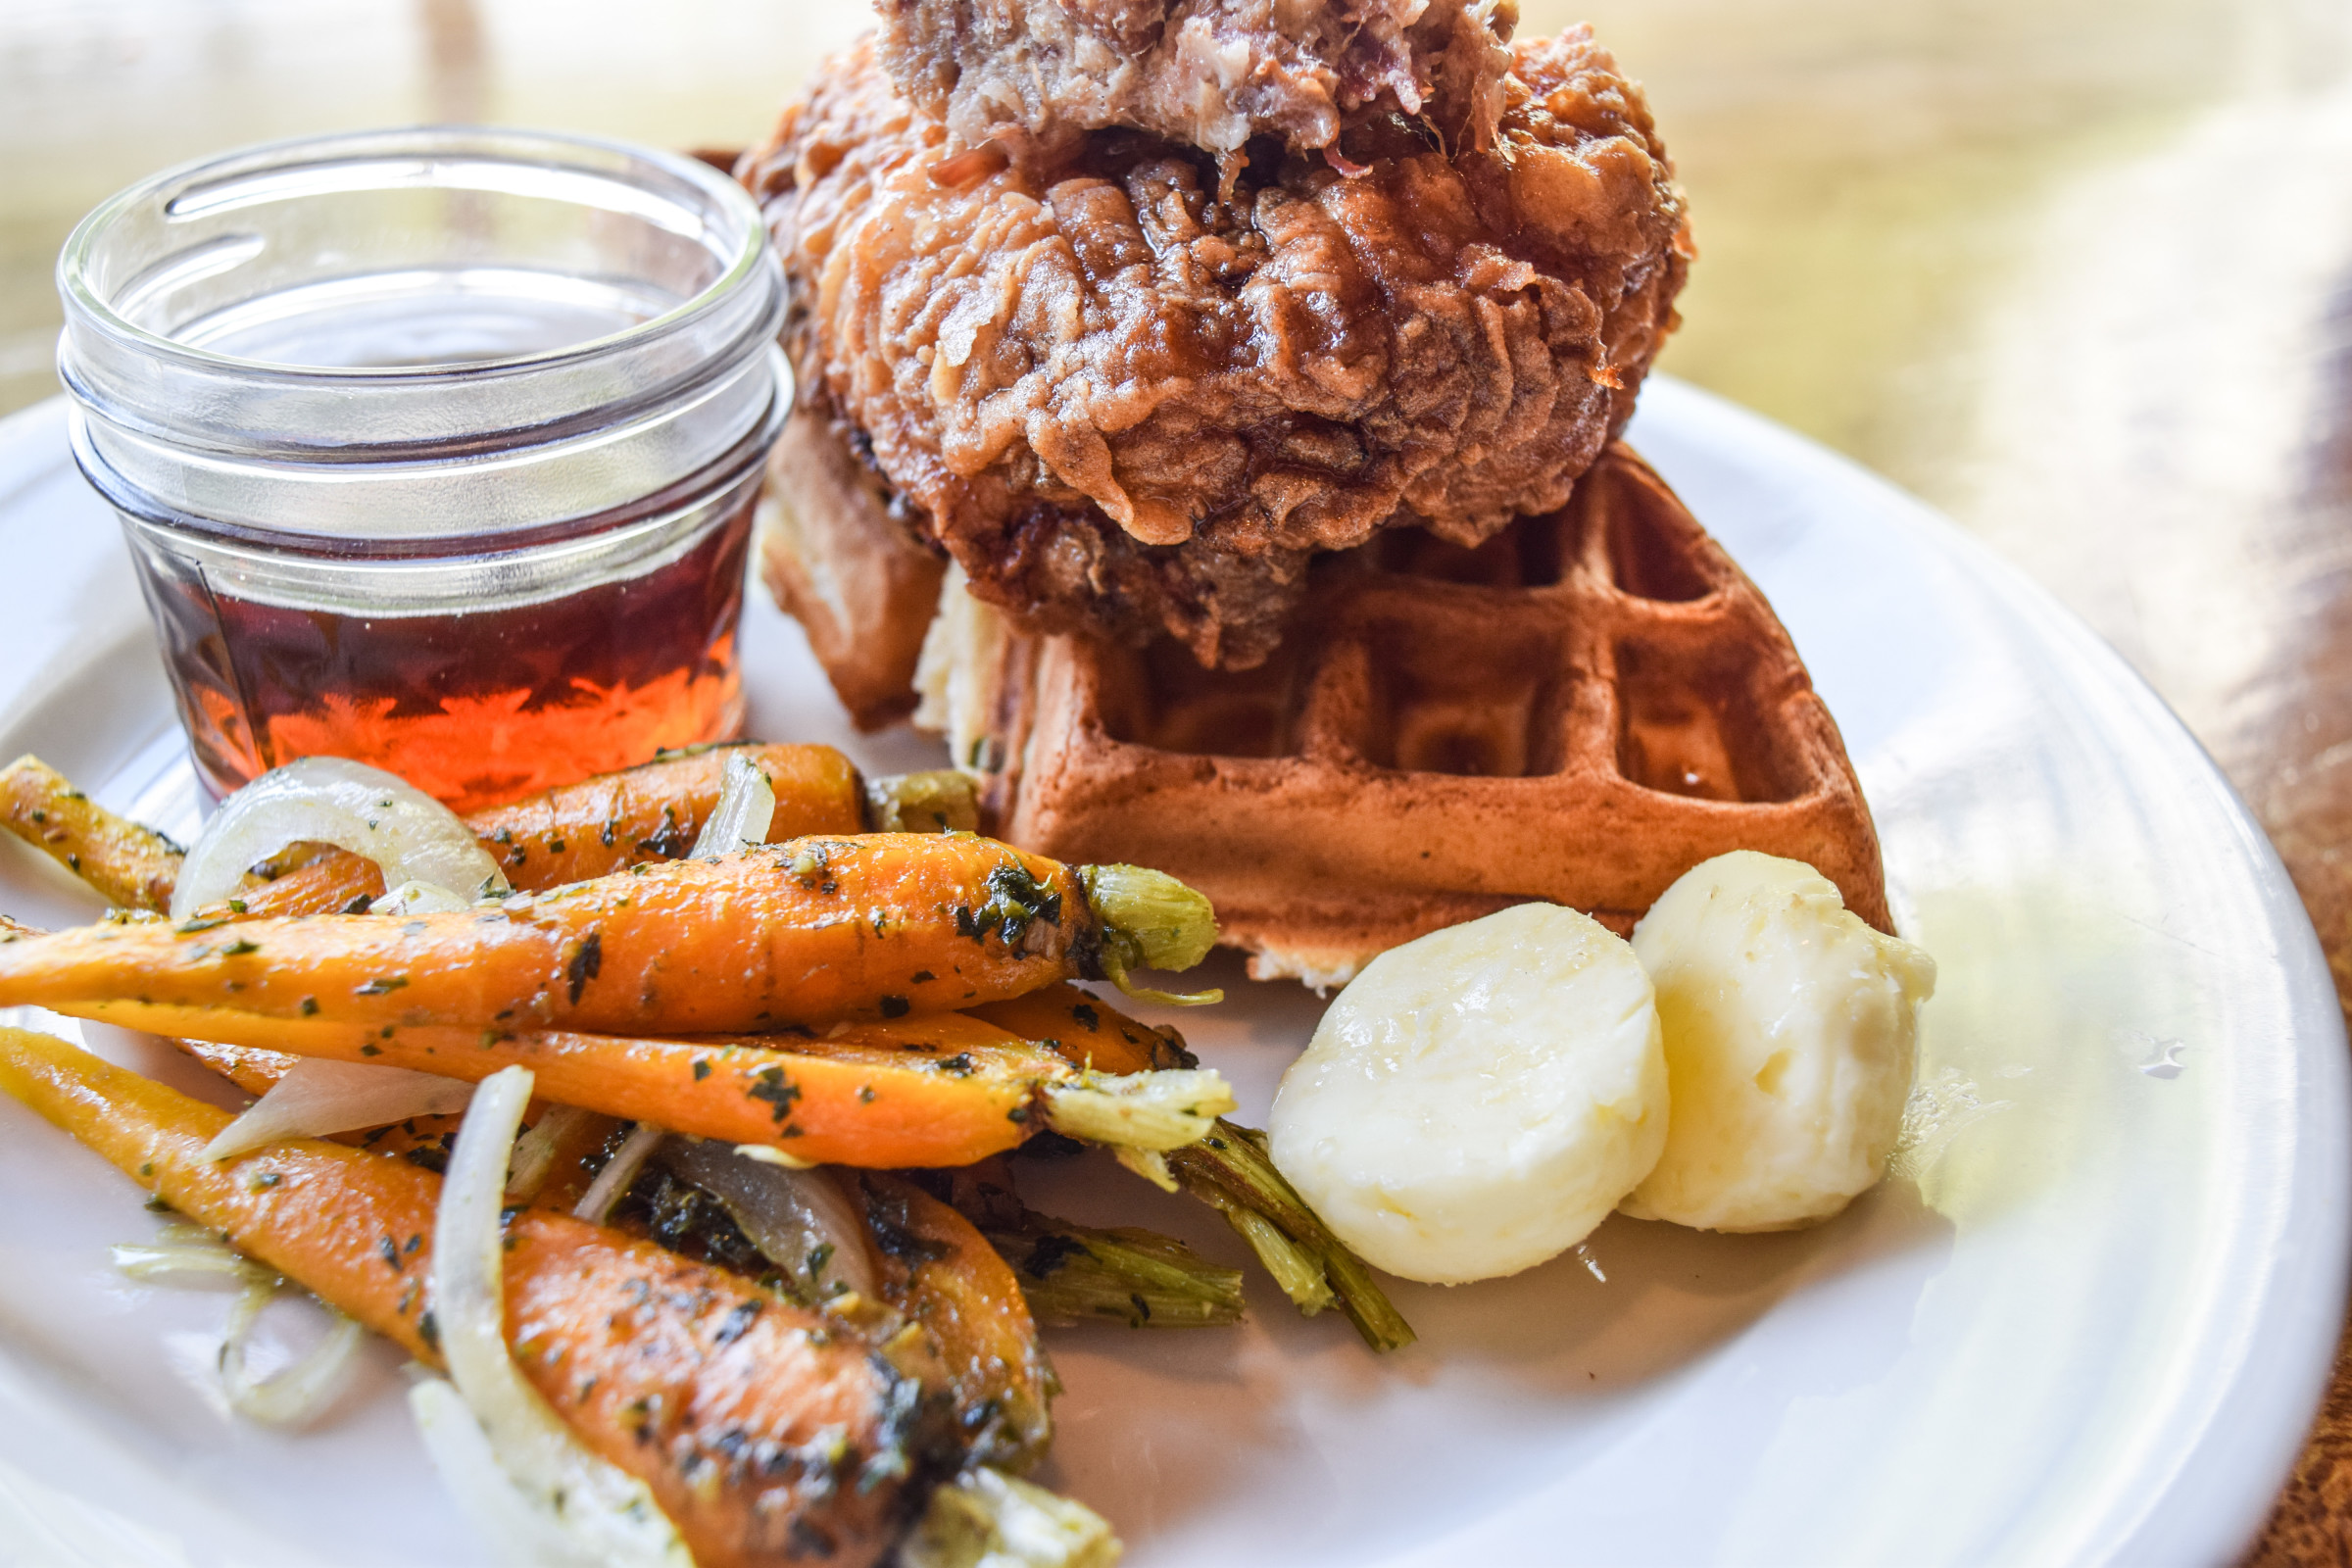 Twains-Chicken-and-Waffles